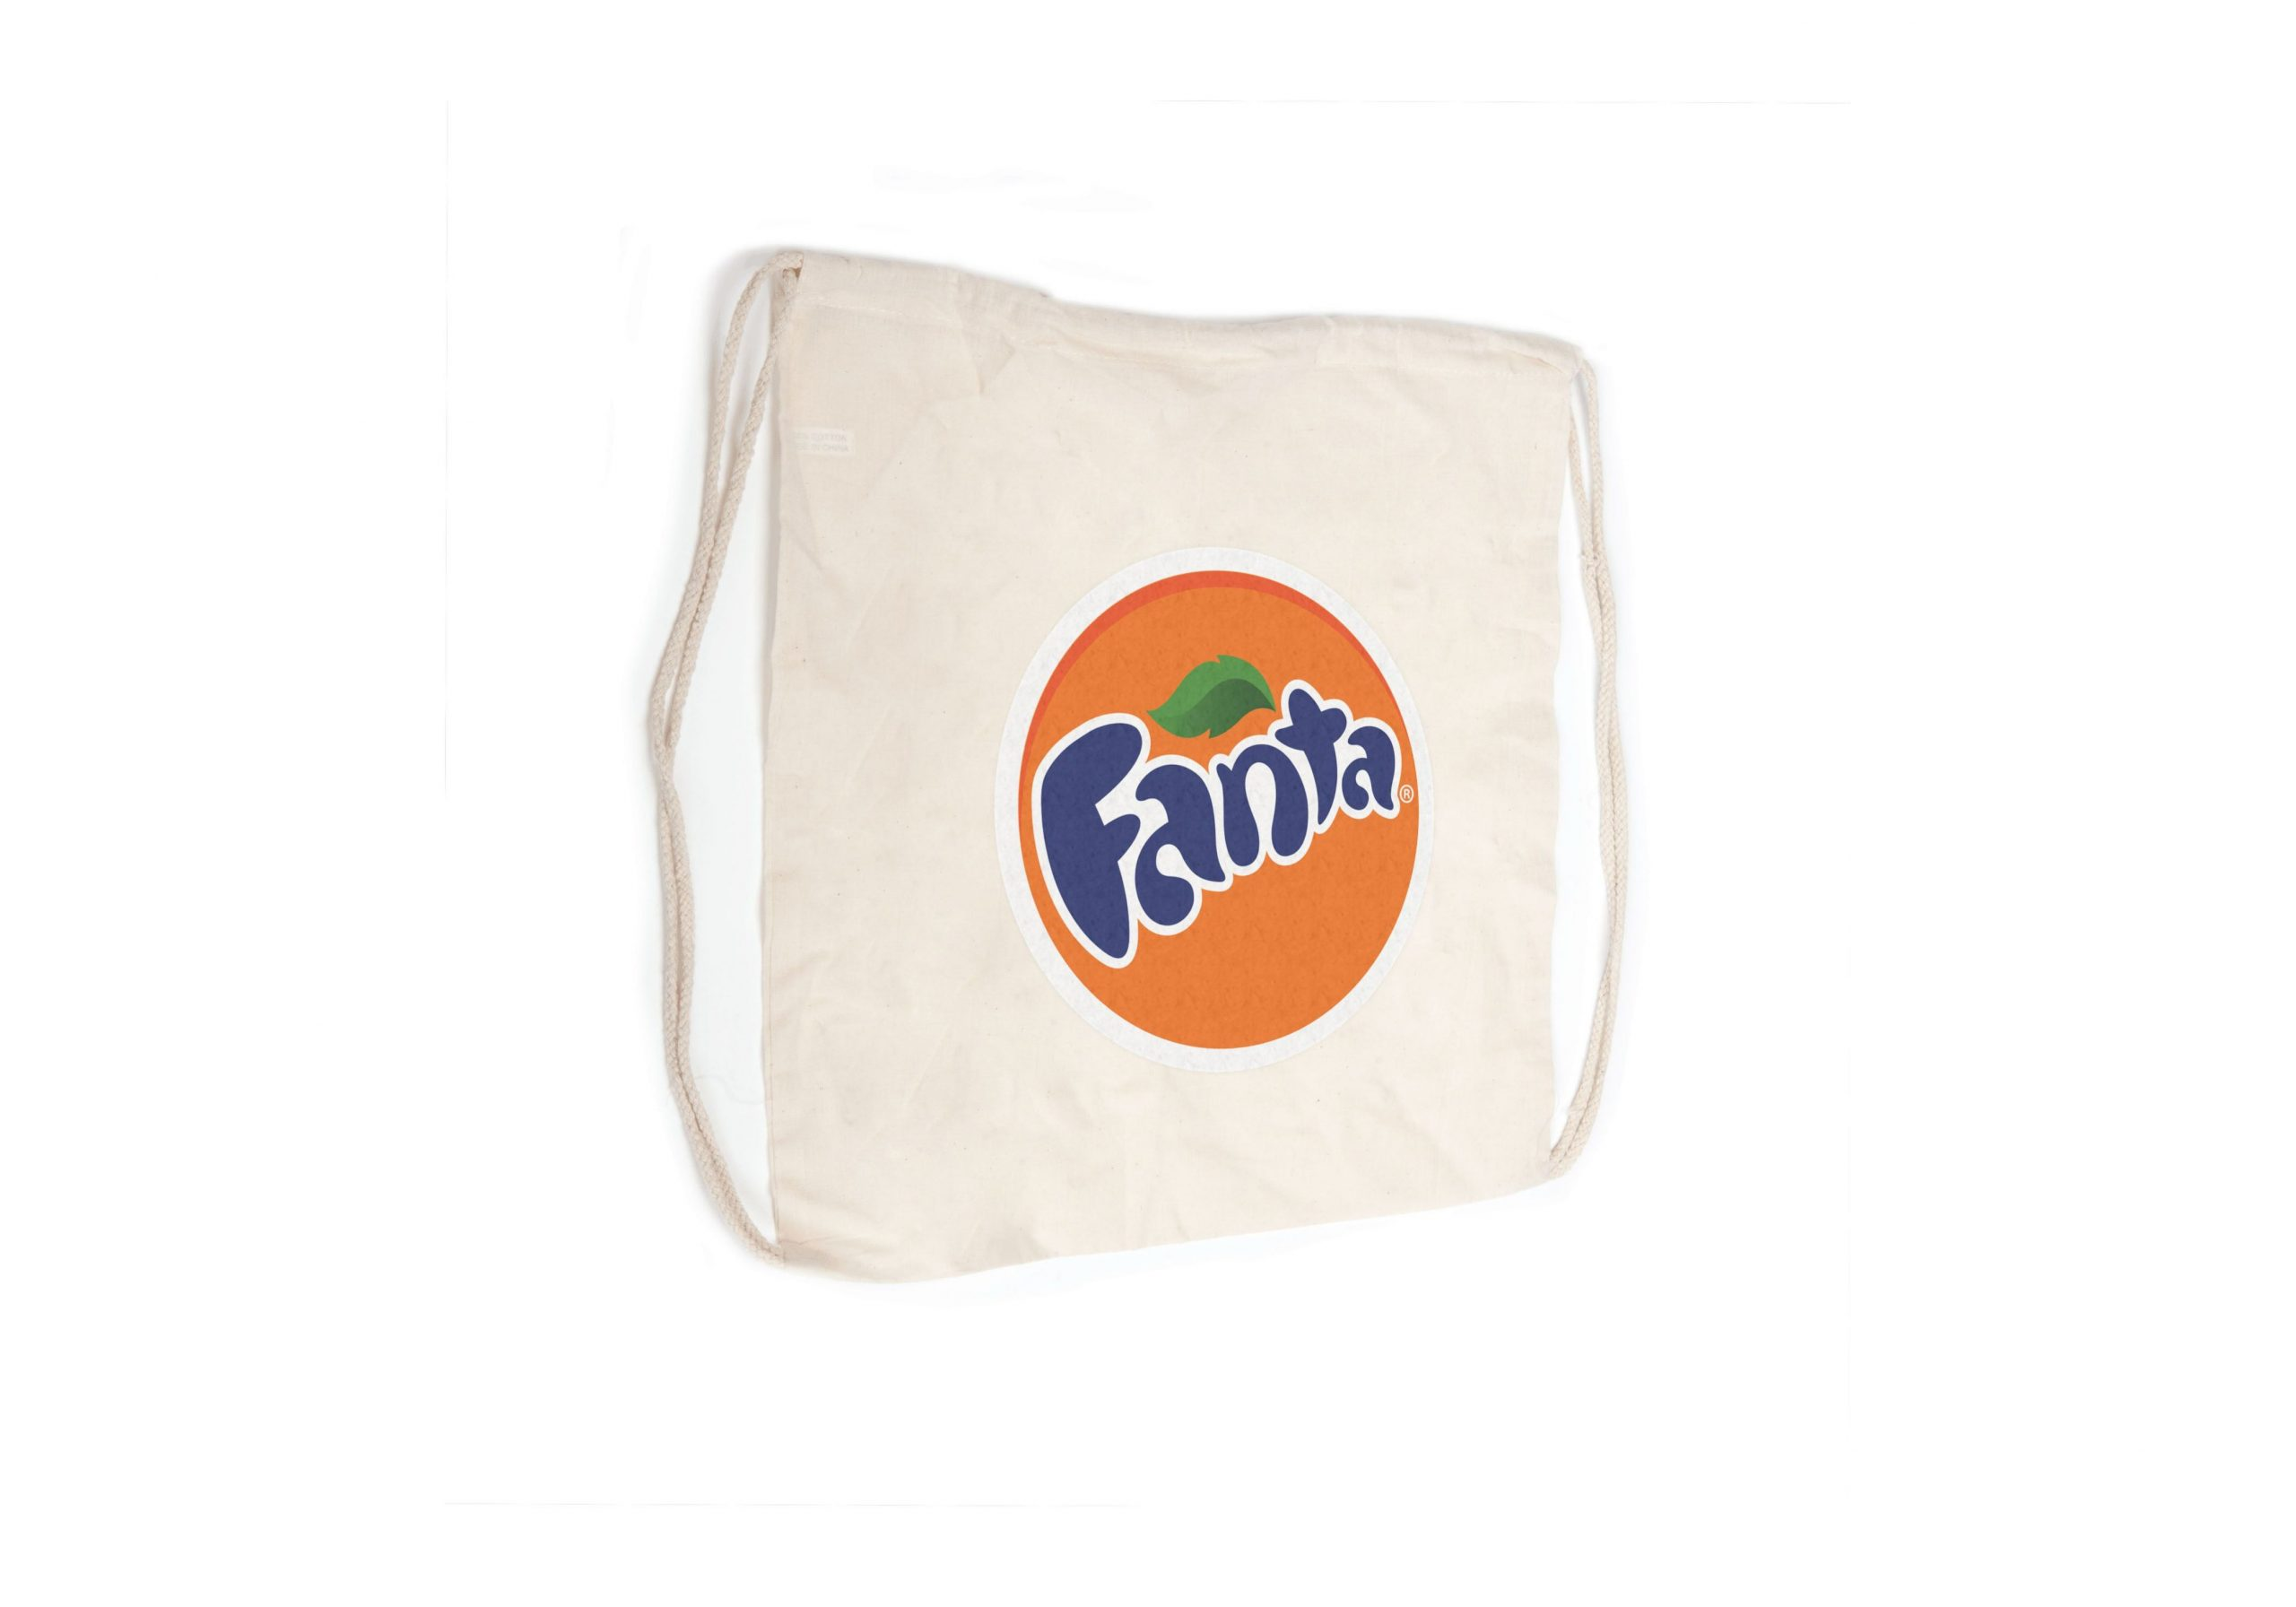 PS4106_-_Montana_Calico_Drawstring_Bag.jpg